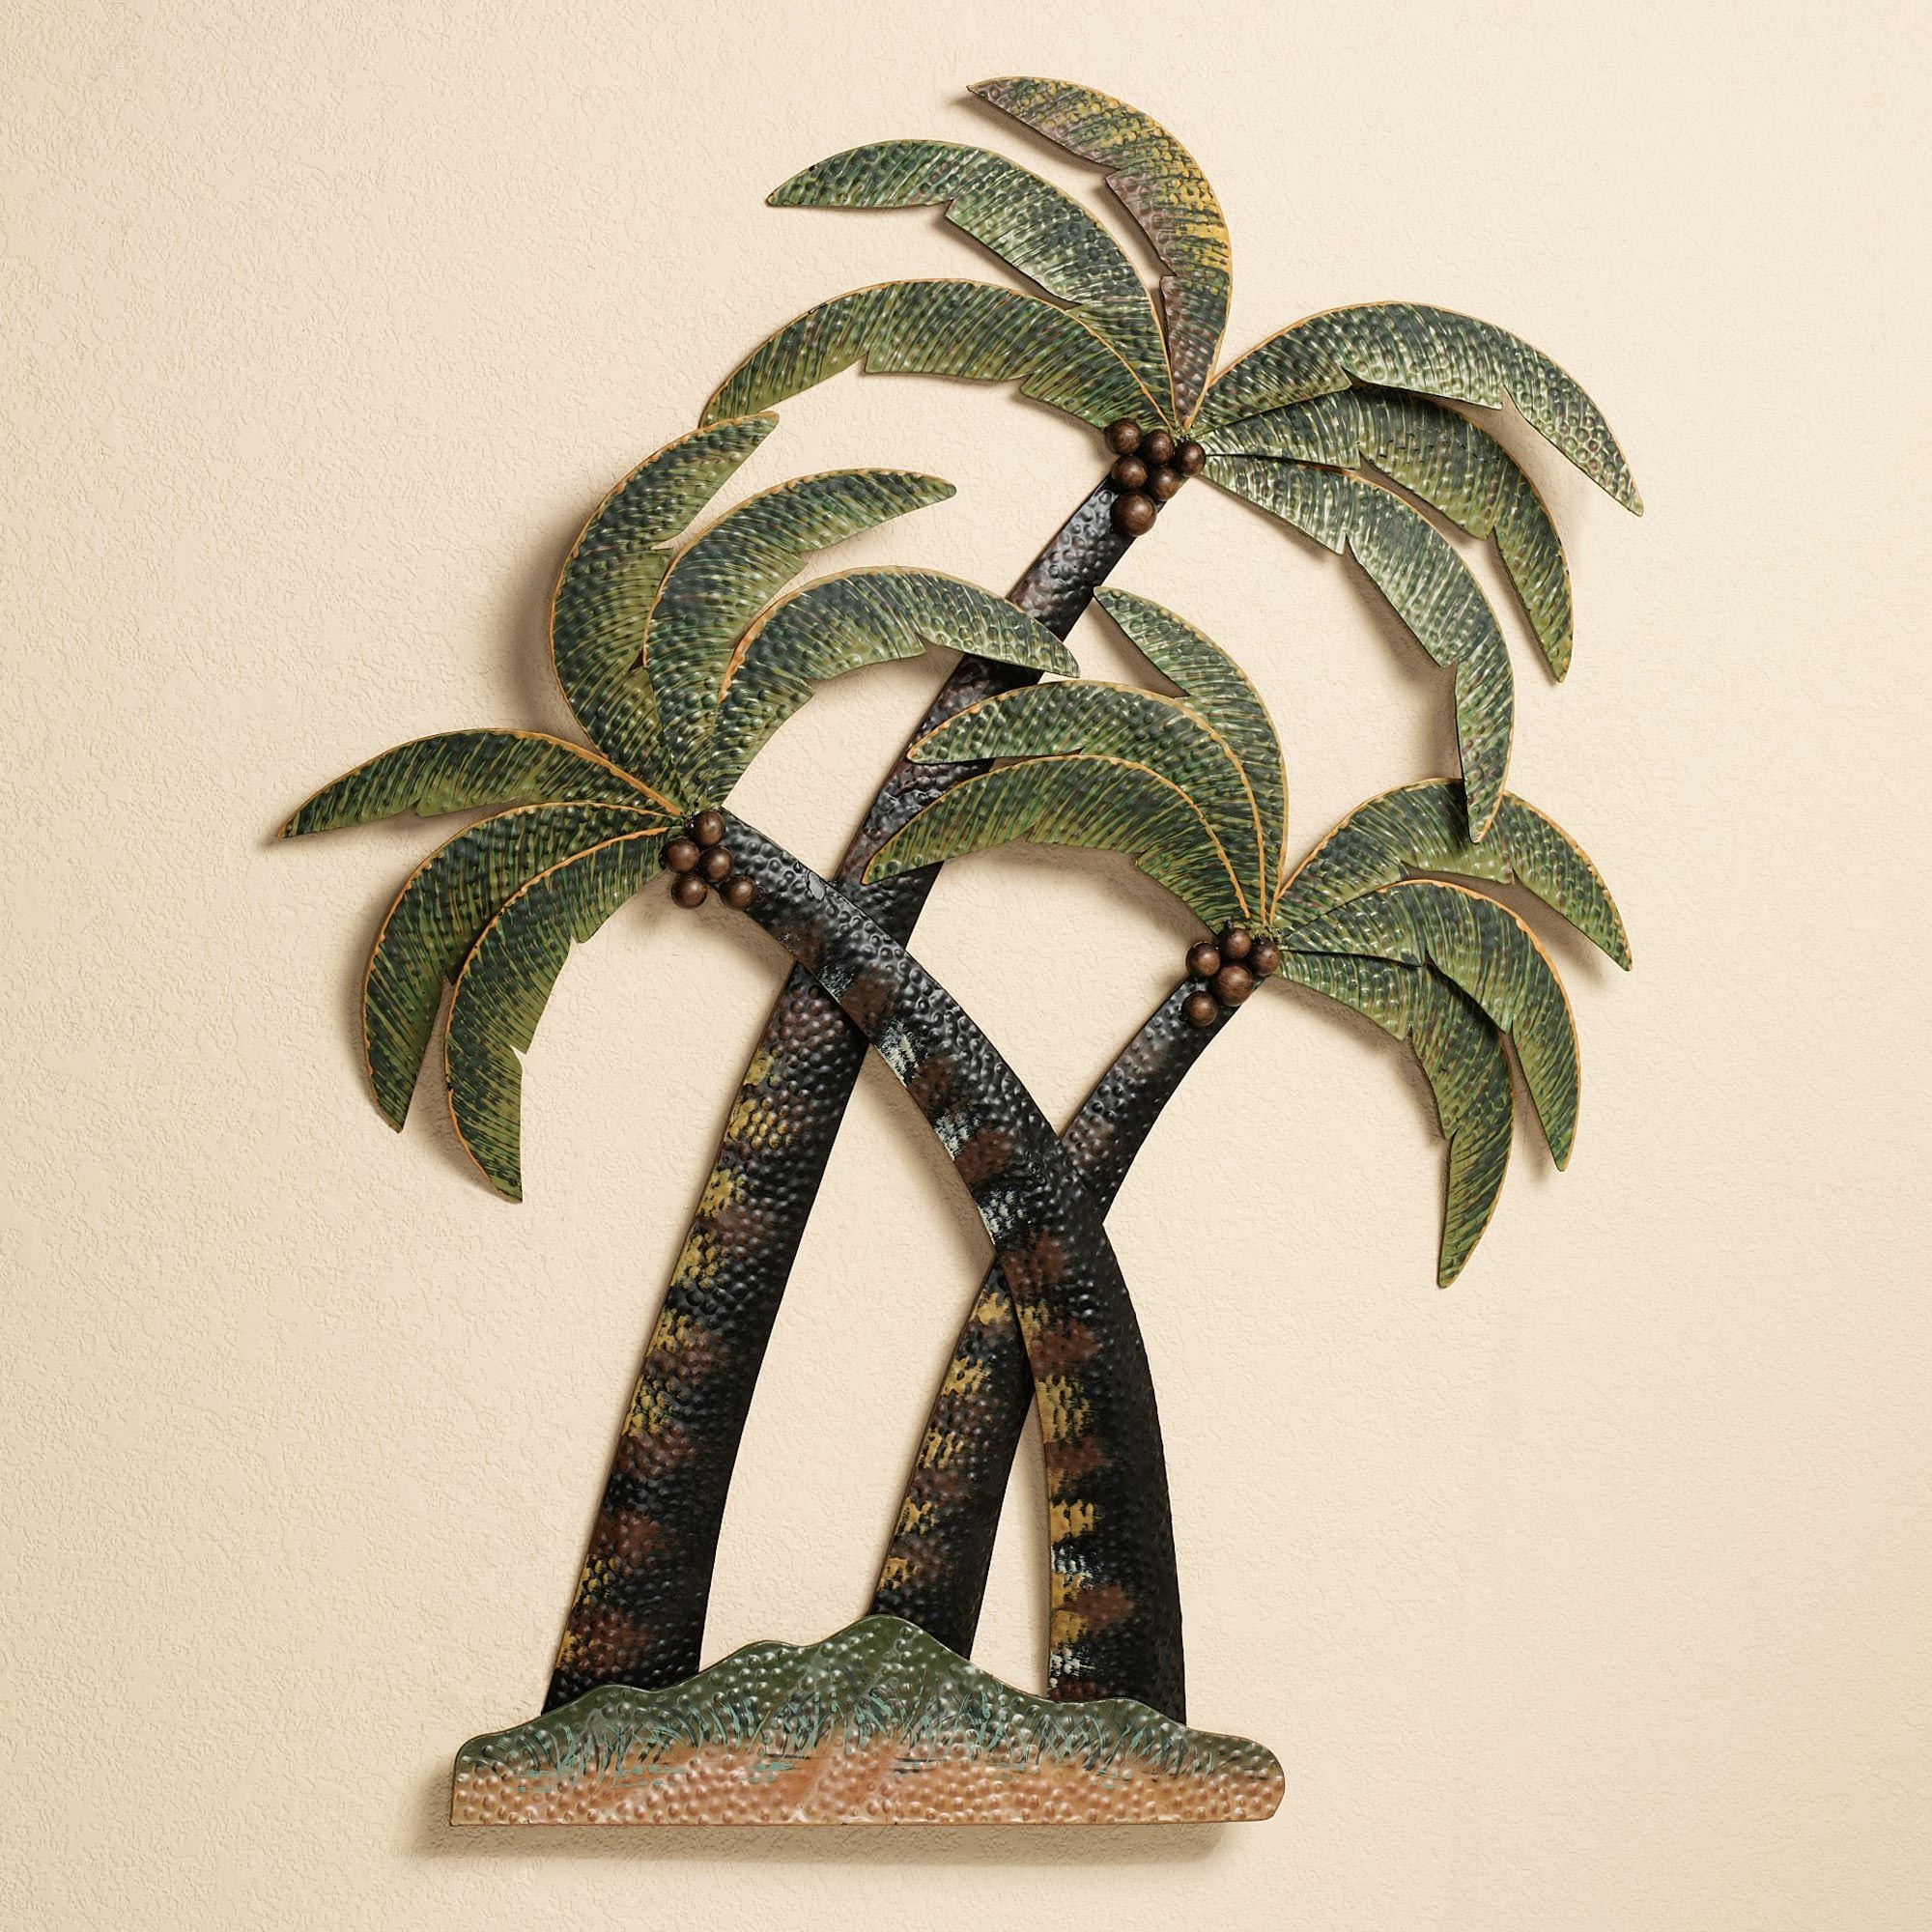 Coco Palm Tree Metal Wall Sculpture with regard to Palm Tree Metal Wall Art